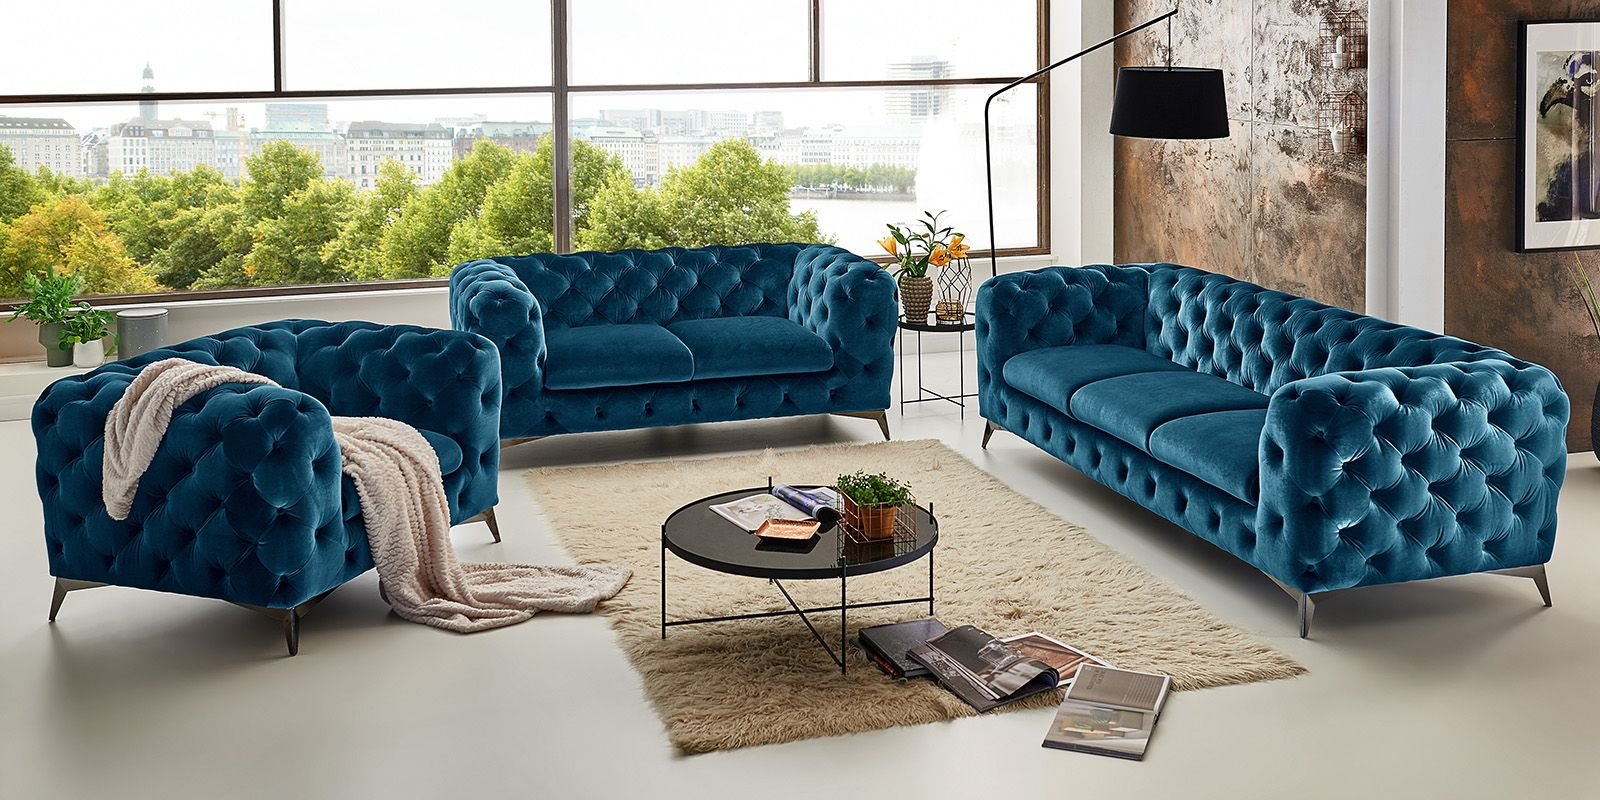 3 2 1 Sitzer Chesterfield Sofa Big Emma Samt Petrol Turkis